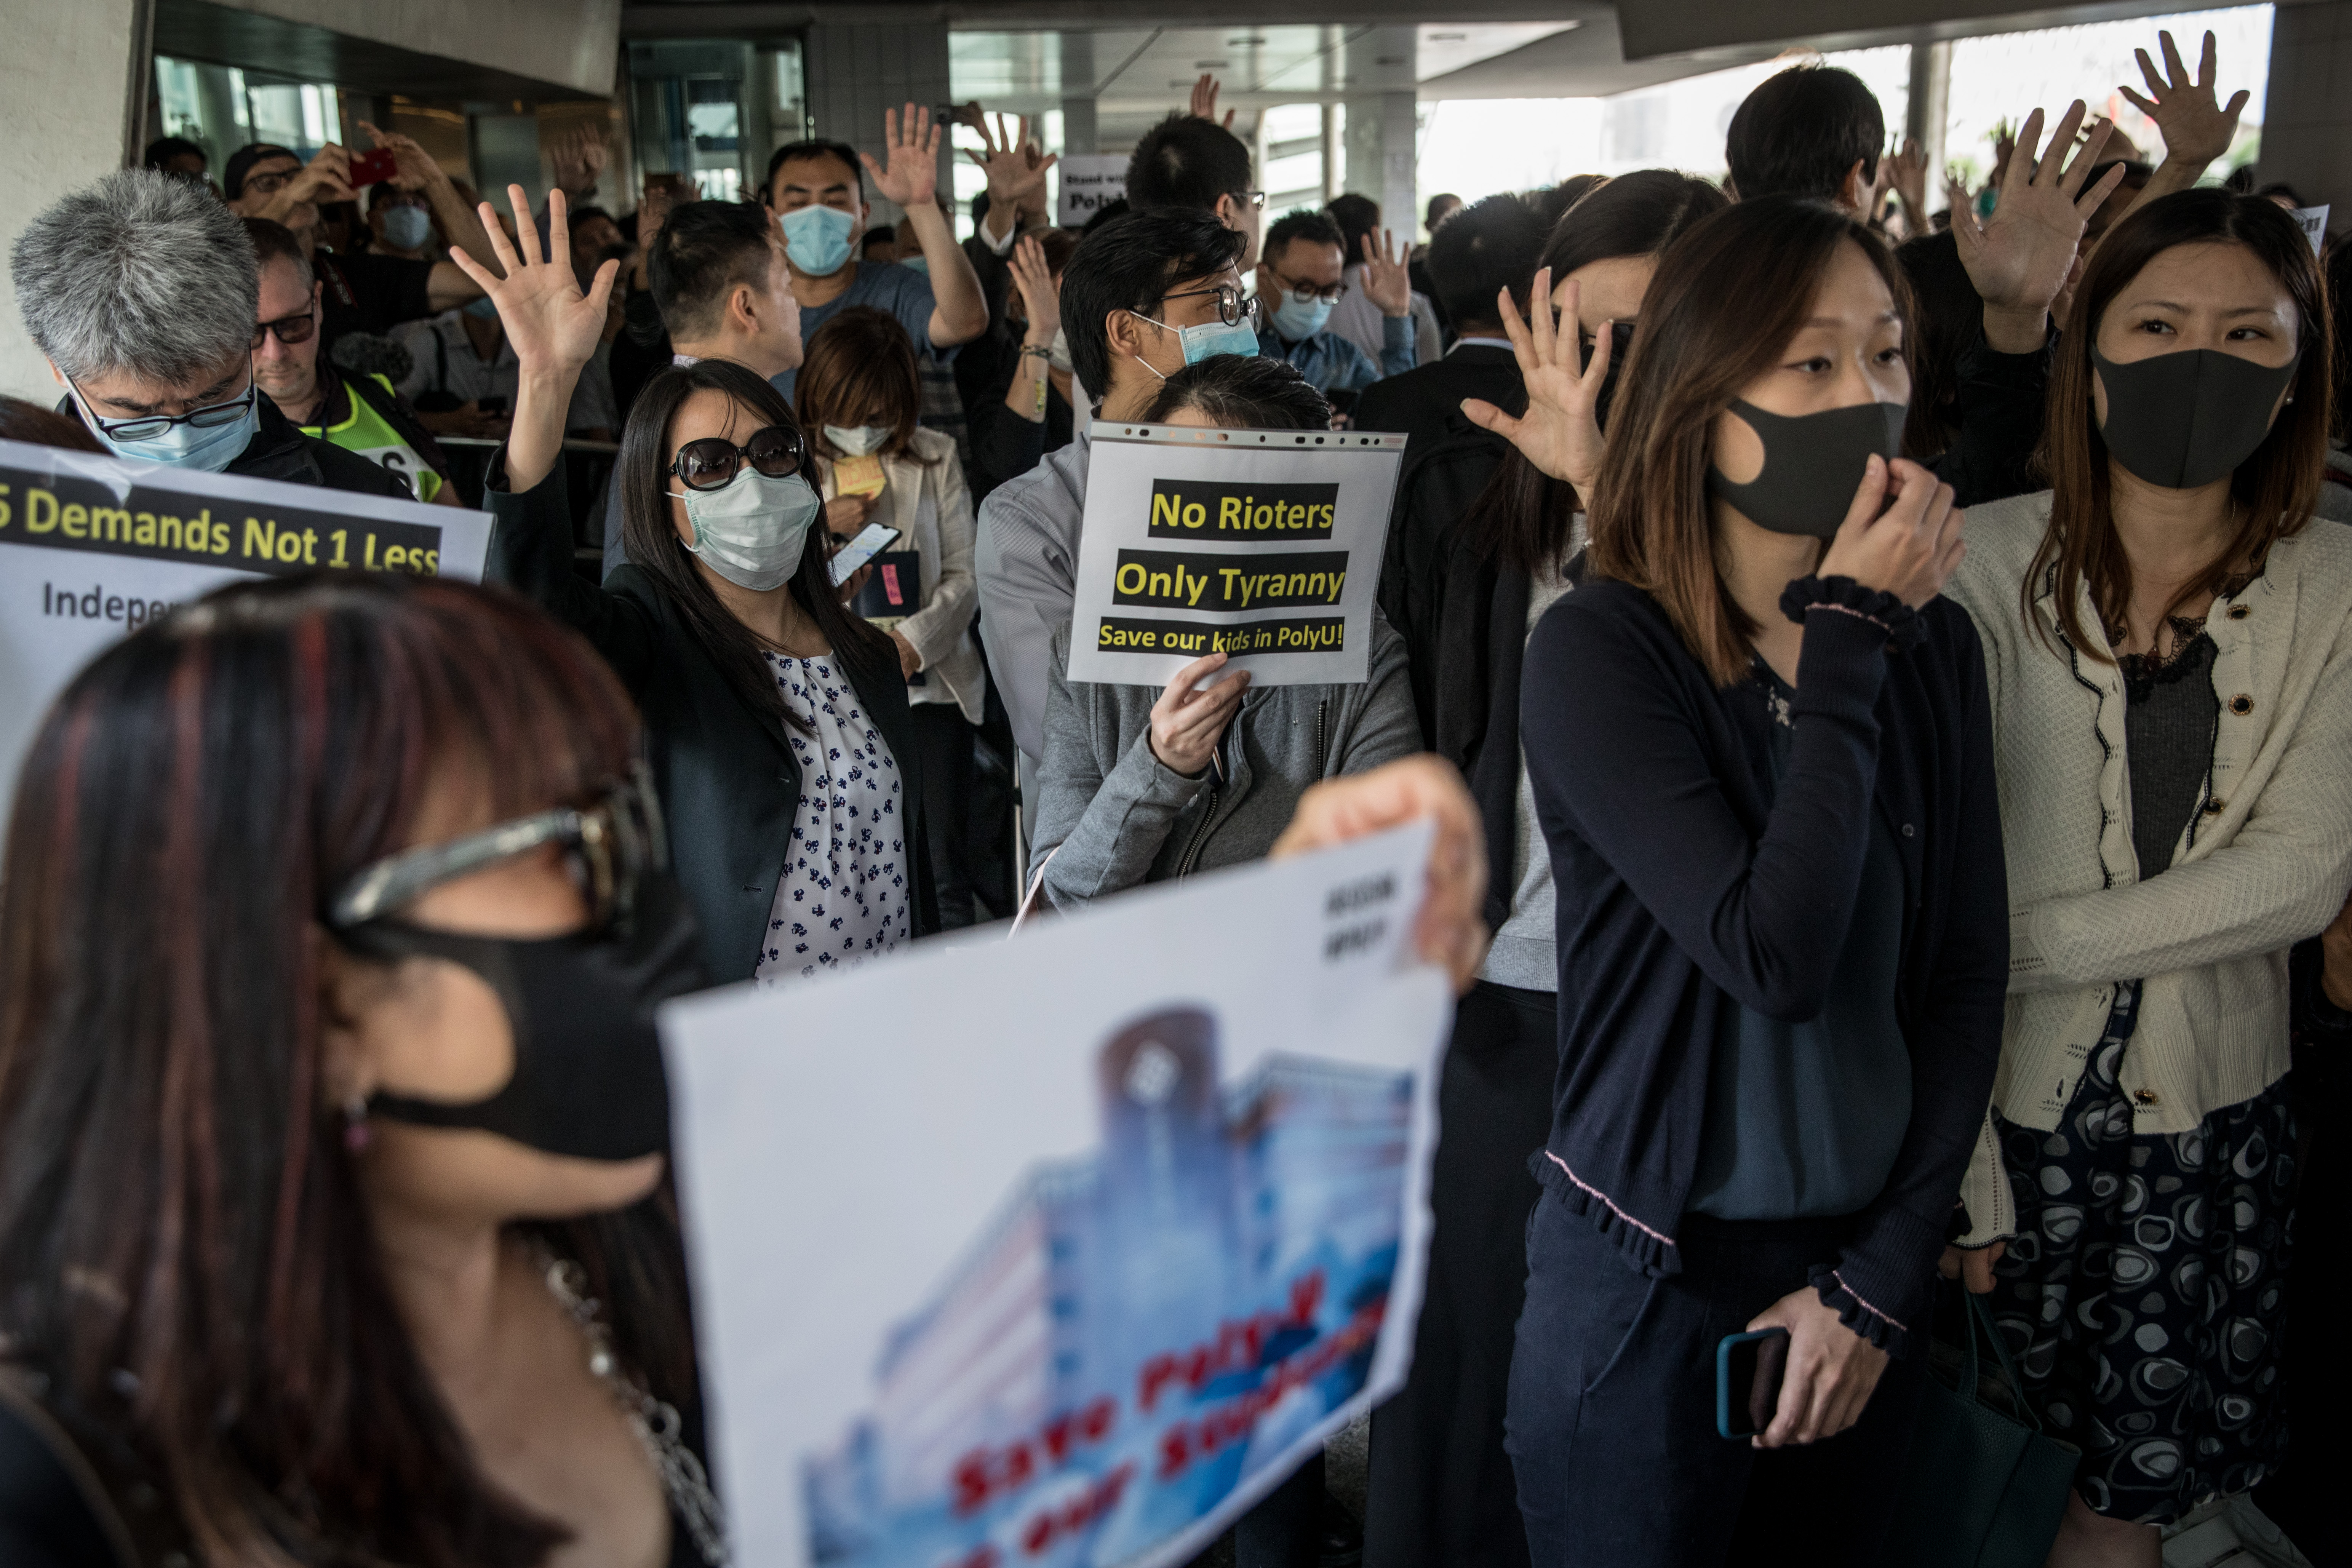 Protesters chant slogans and hold signs on a footbridge in the central business district during a lunch time protest on November 27, 2019 in Hong Kong, China. (Chris McGrath/Getty Images)